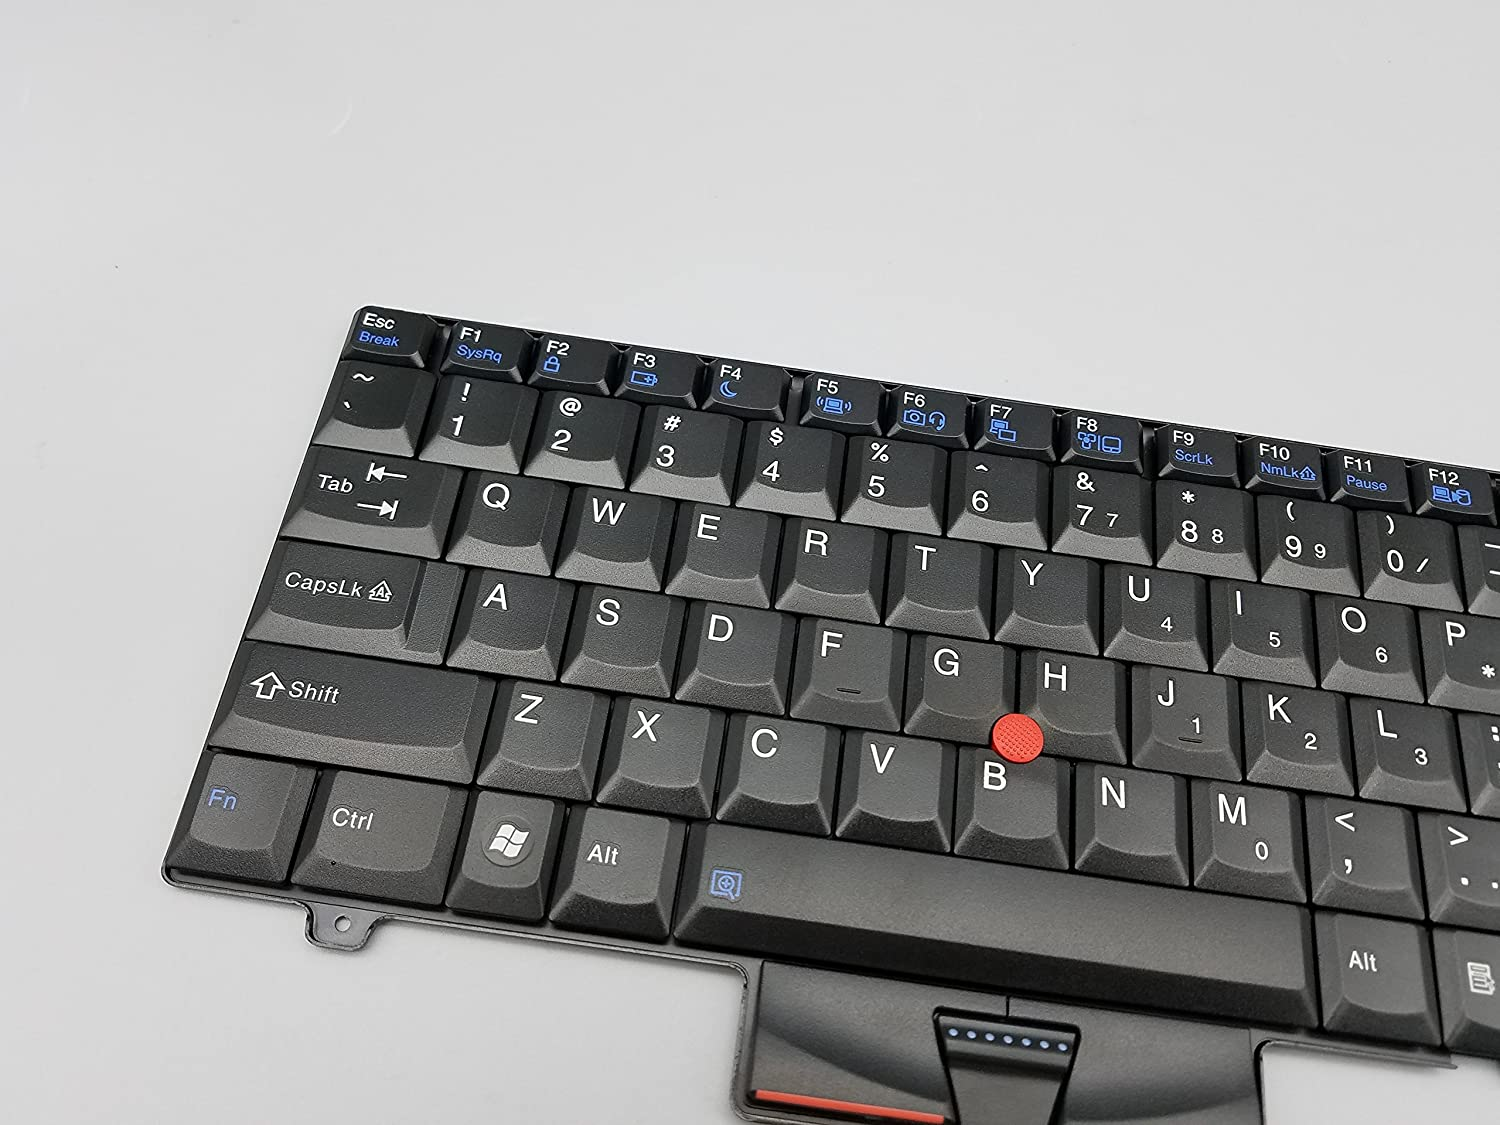 New Laptop Replacement Keyboard for Thinkpad L410 L412 L420 L420 L512 L520 SL410 SL410K SL510K SL510K Series US Layout 45N2318 45N2353 5BA03G GM-84US MP-08J83US-387 Black SL410